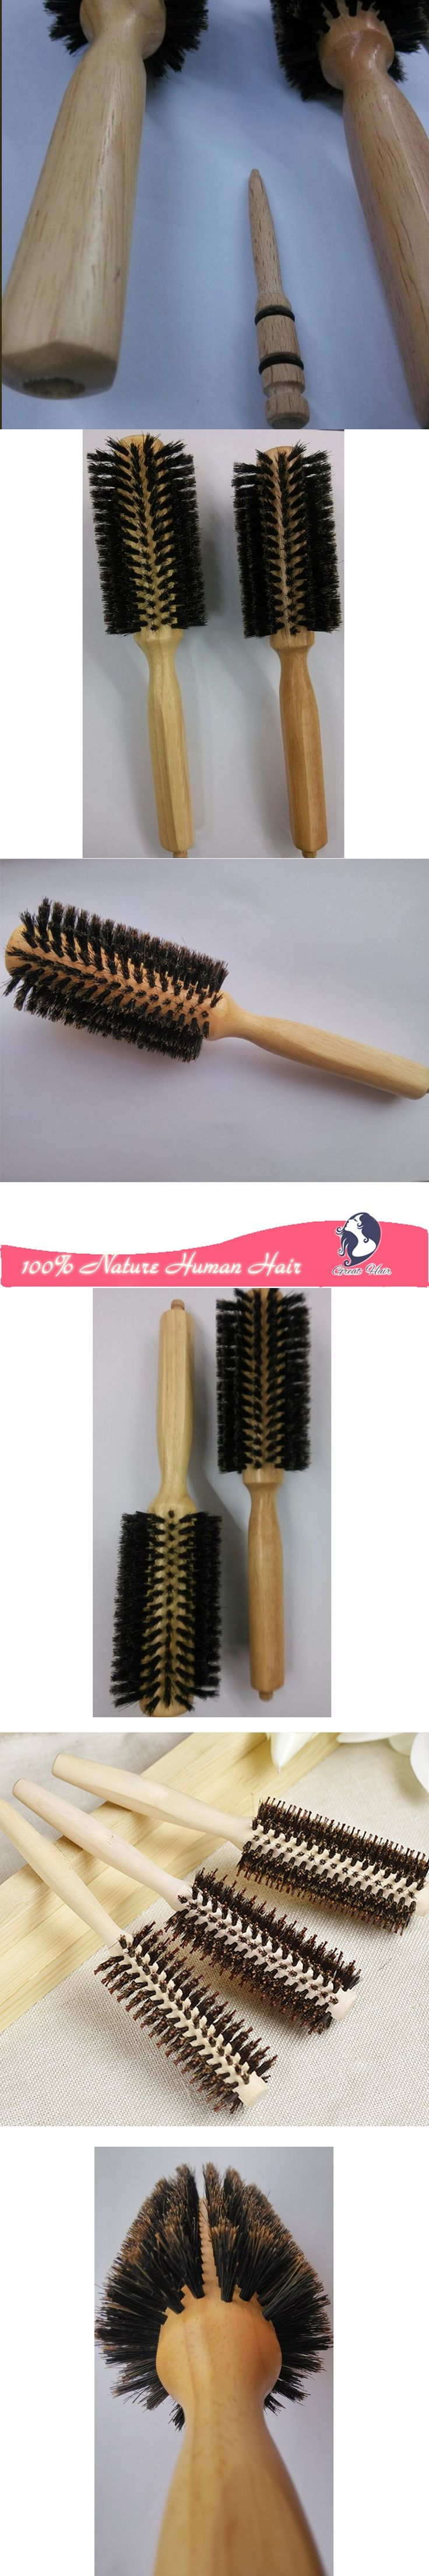 straight line Curly Hair Brush Comb log Wood Handle Pig Mane  Hair Comb Brush Antistatic Detangling Massage Hairbrush Styling